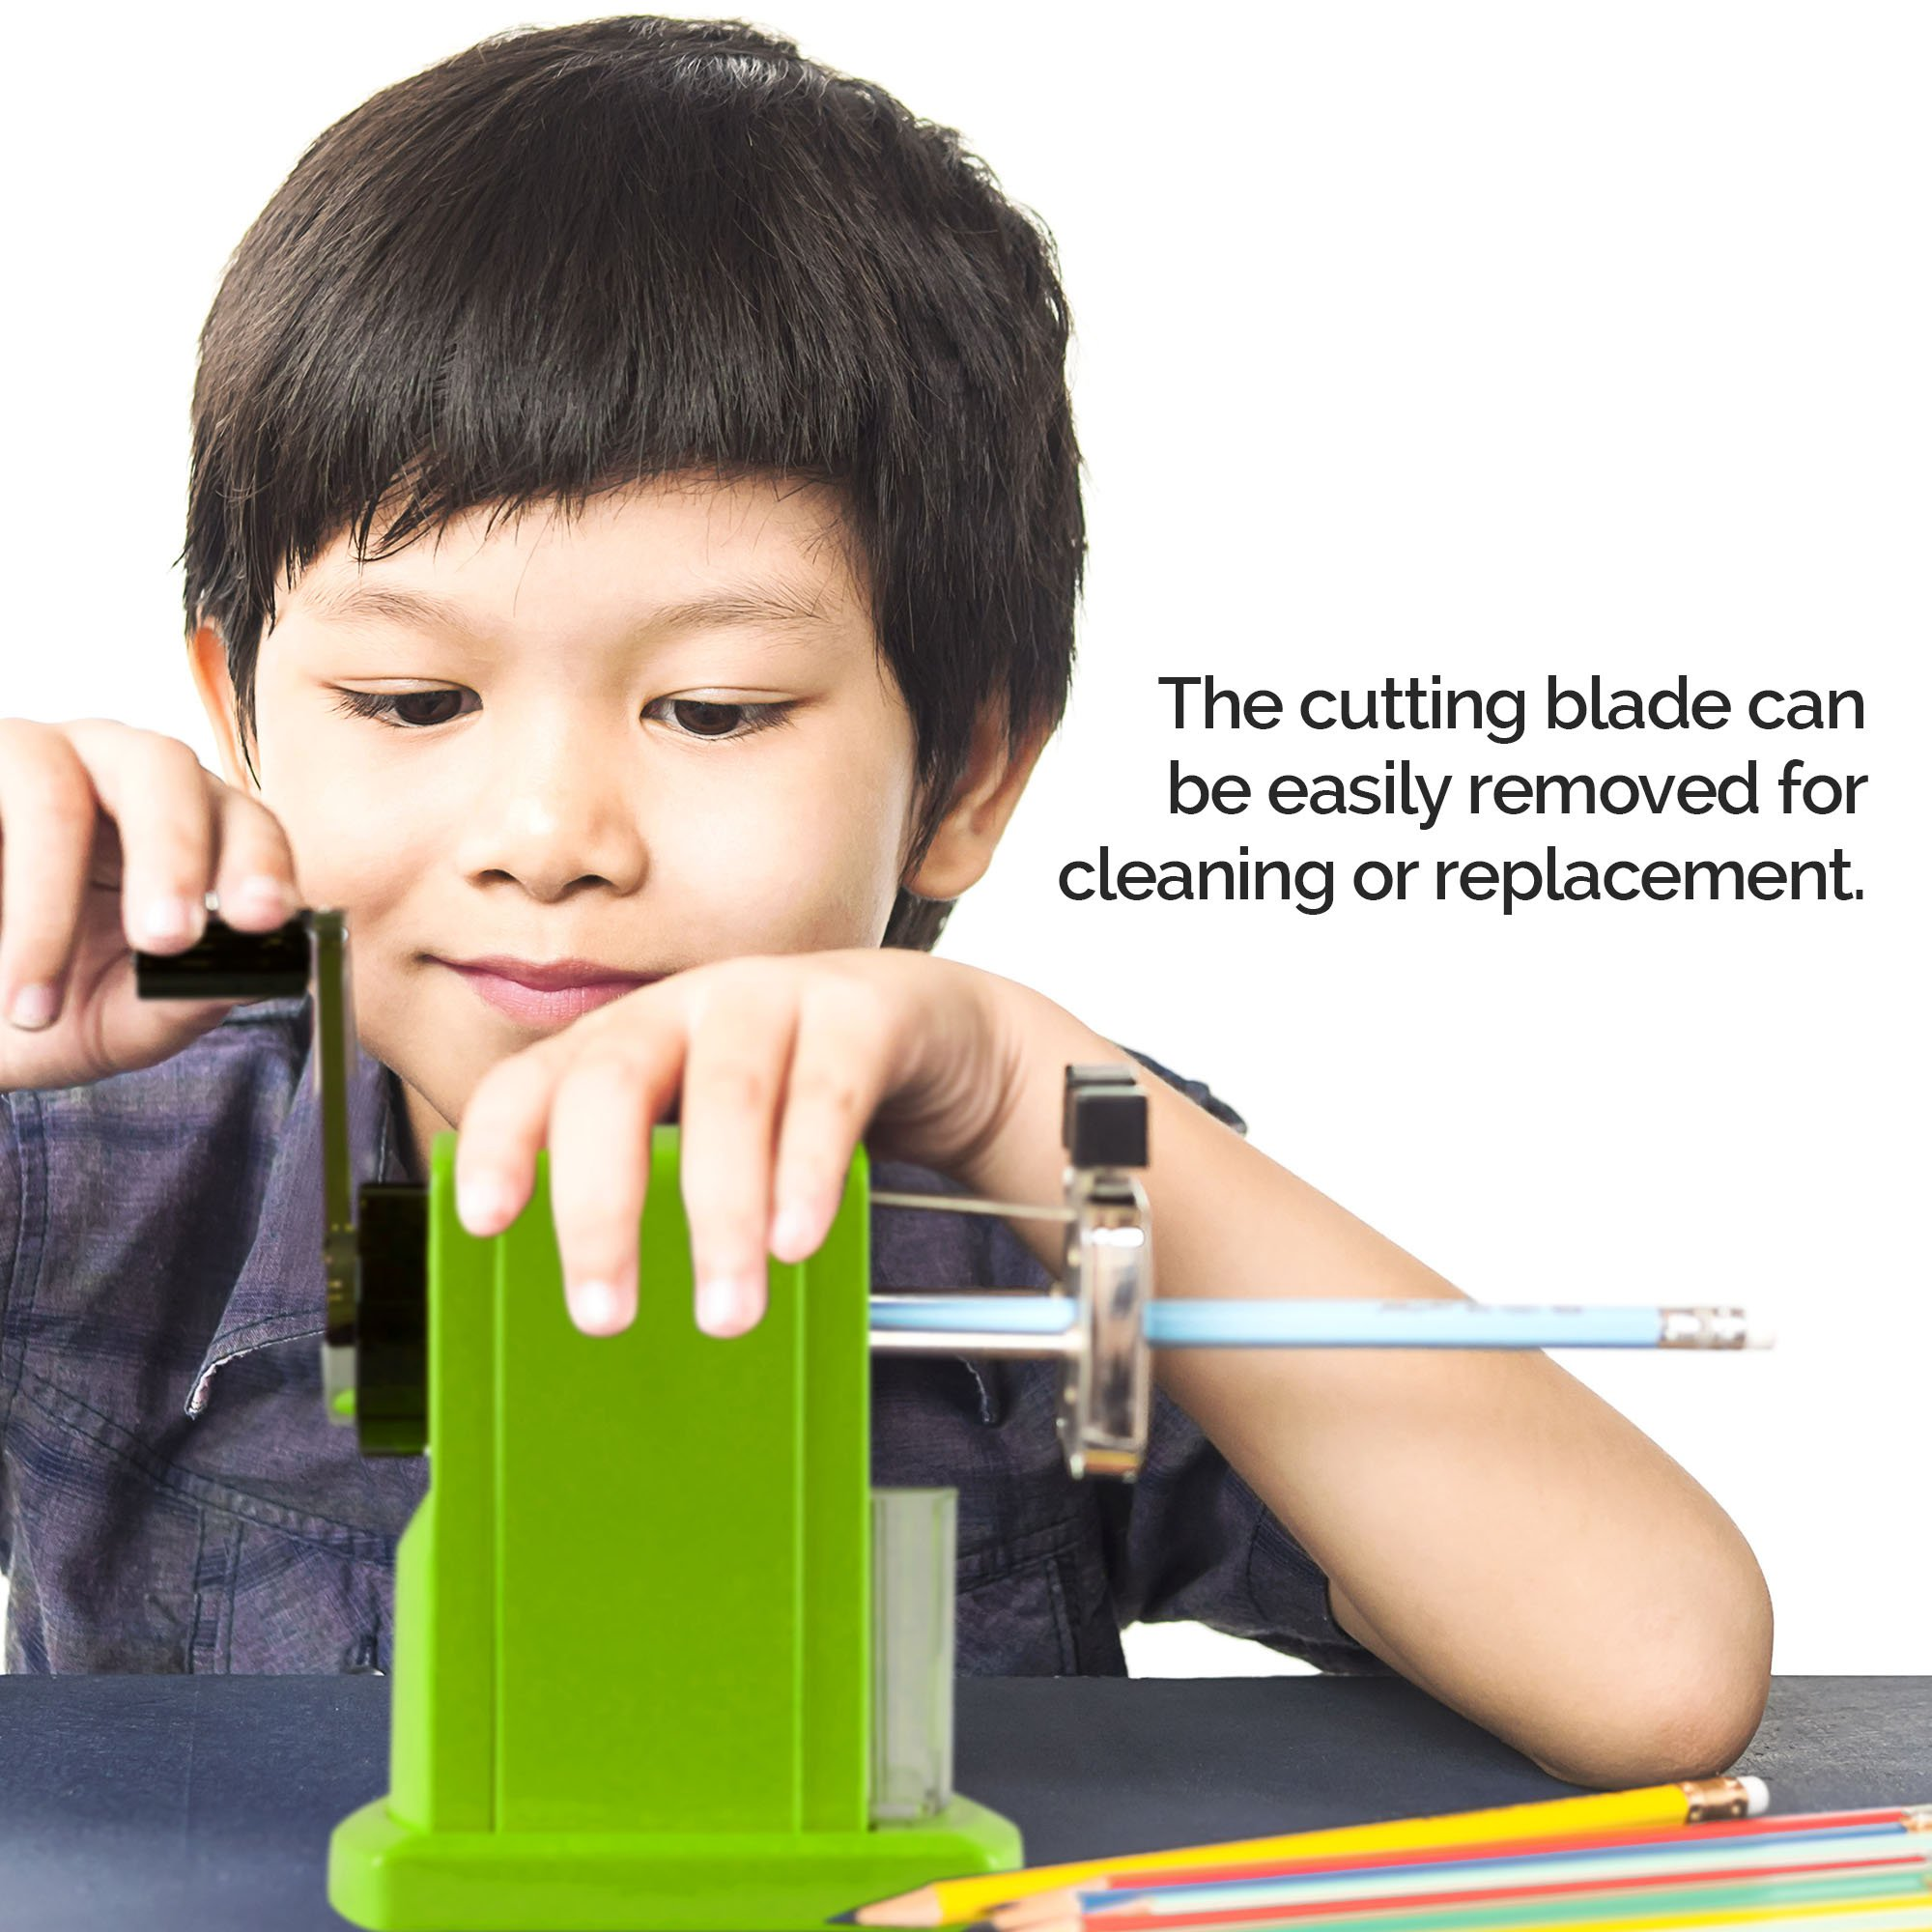 SharpTank - Portable Pencil Sharpener (Key Lime Green) - Compact & Quiet Classroom Sharpener That Gets Straight to The Point! by SHARP TANK (Image #8)